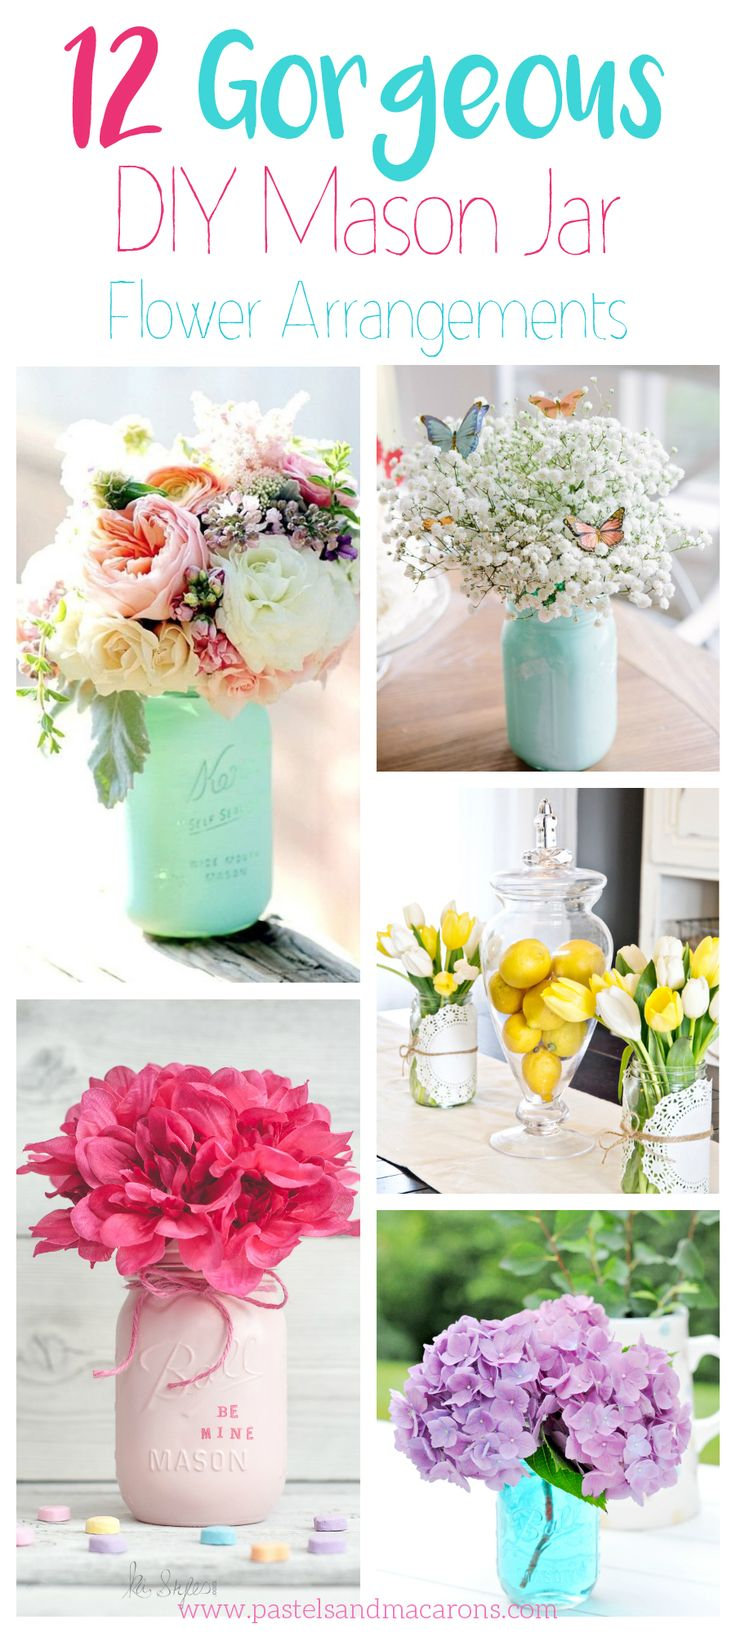 These 12 Gorgeous DIY Mason Jar Flower Arrangements are perfect all year around. Make your home beautiful, fresh and inviting by adding pops of colour and lush floral combinations in gorgeous Mason Jars!